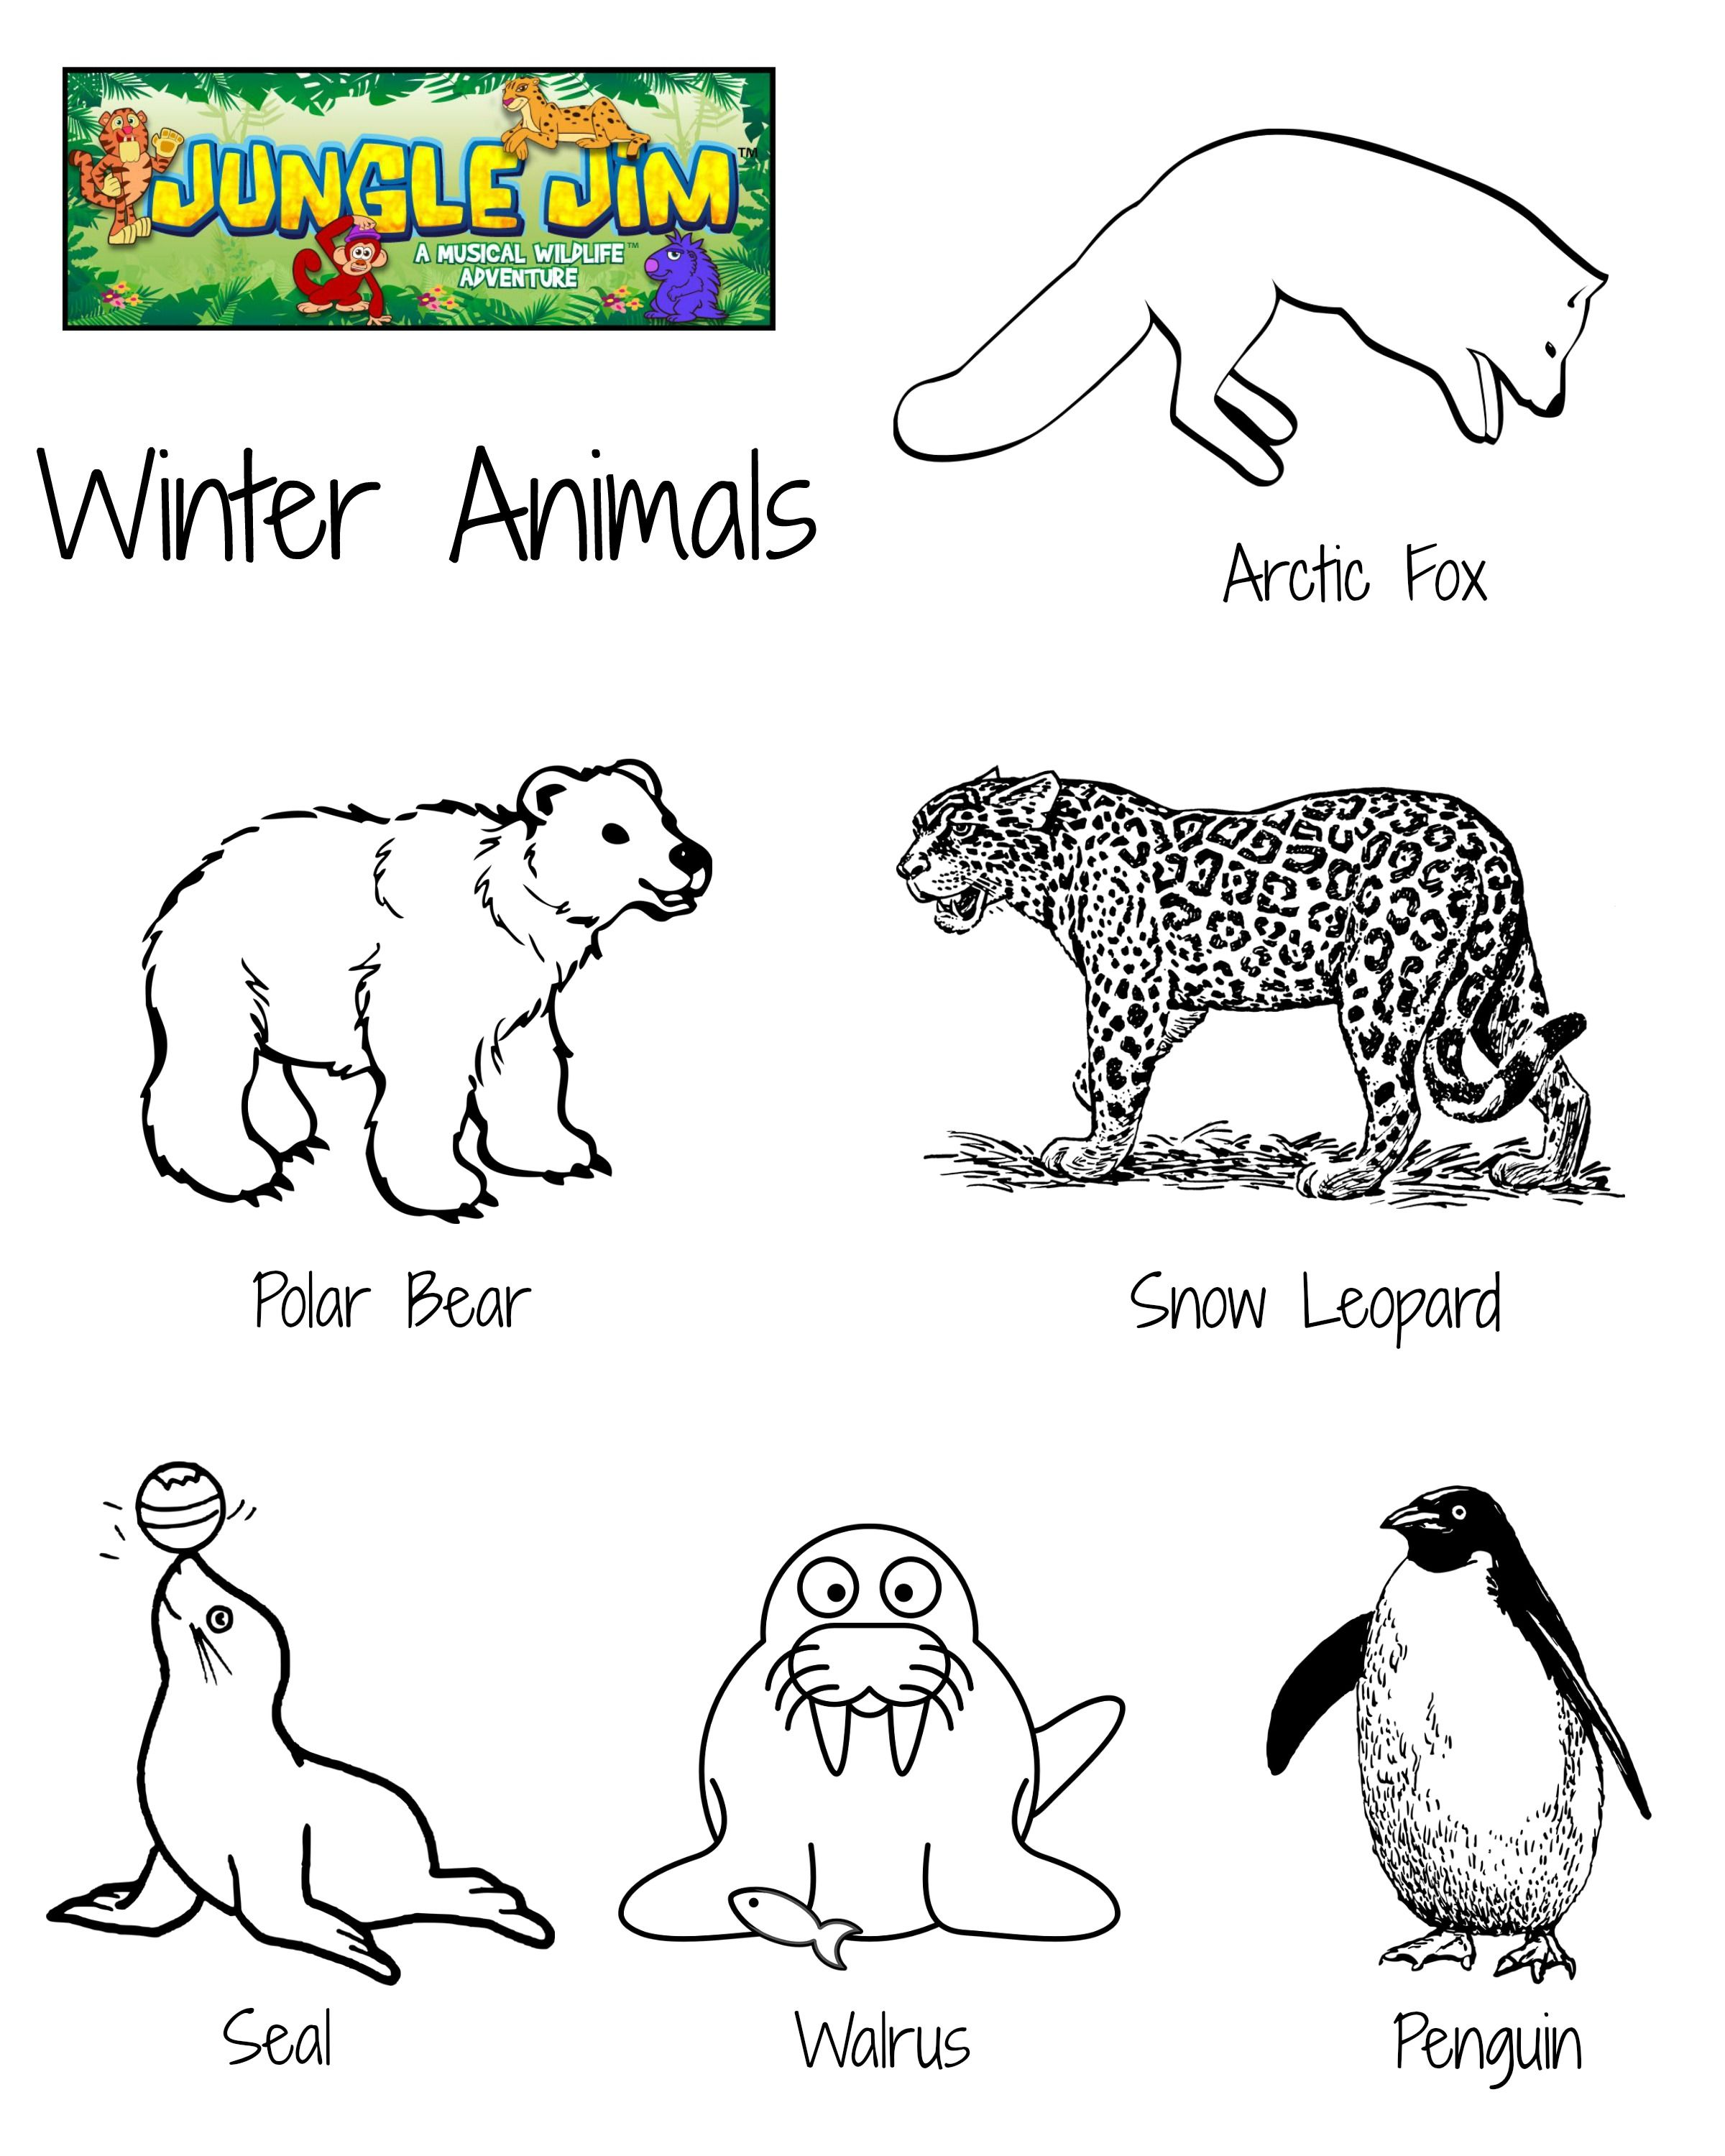 Winter Animal Free Printable Coloring Page With Lots Of Cute Winter Animals Junglejim Winter